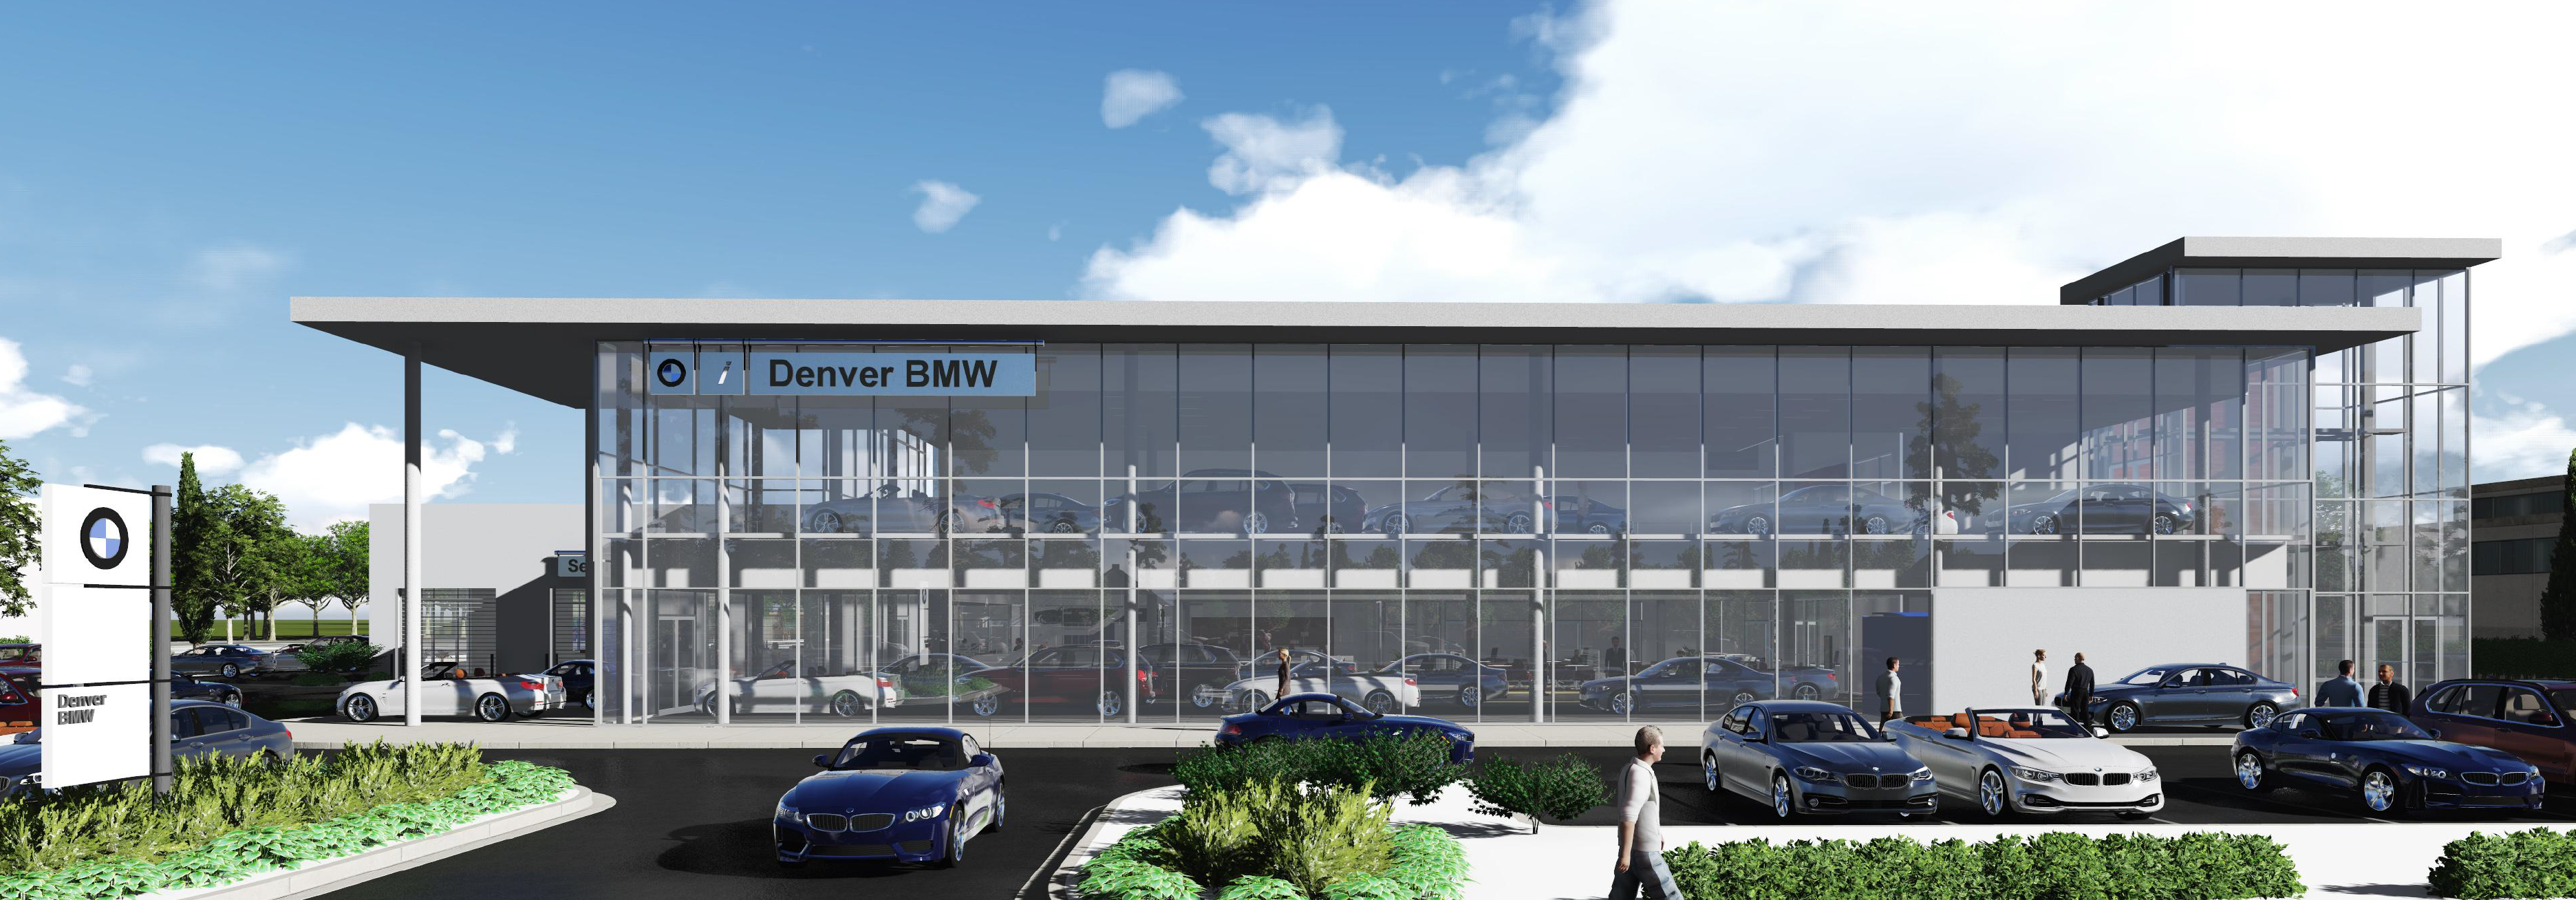 BusinessDen Doubledecker dealerships planned for Colorado Blvd